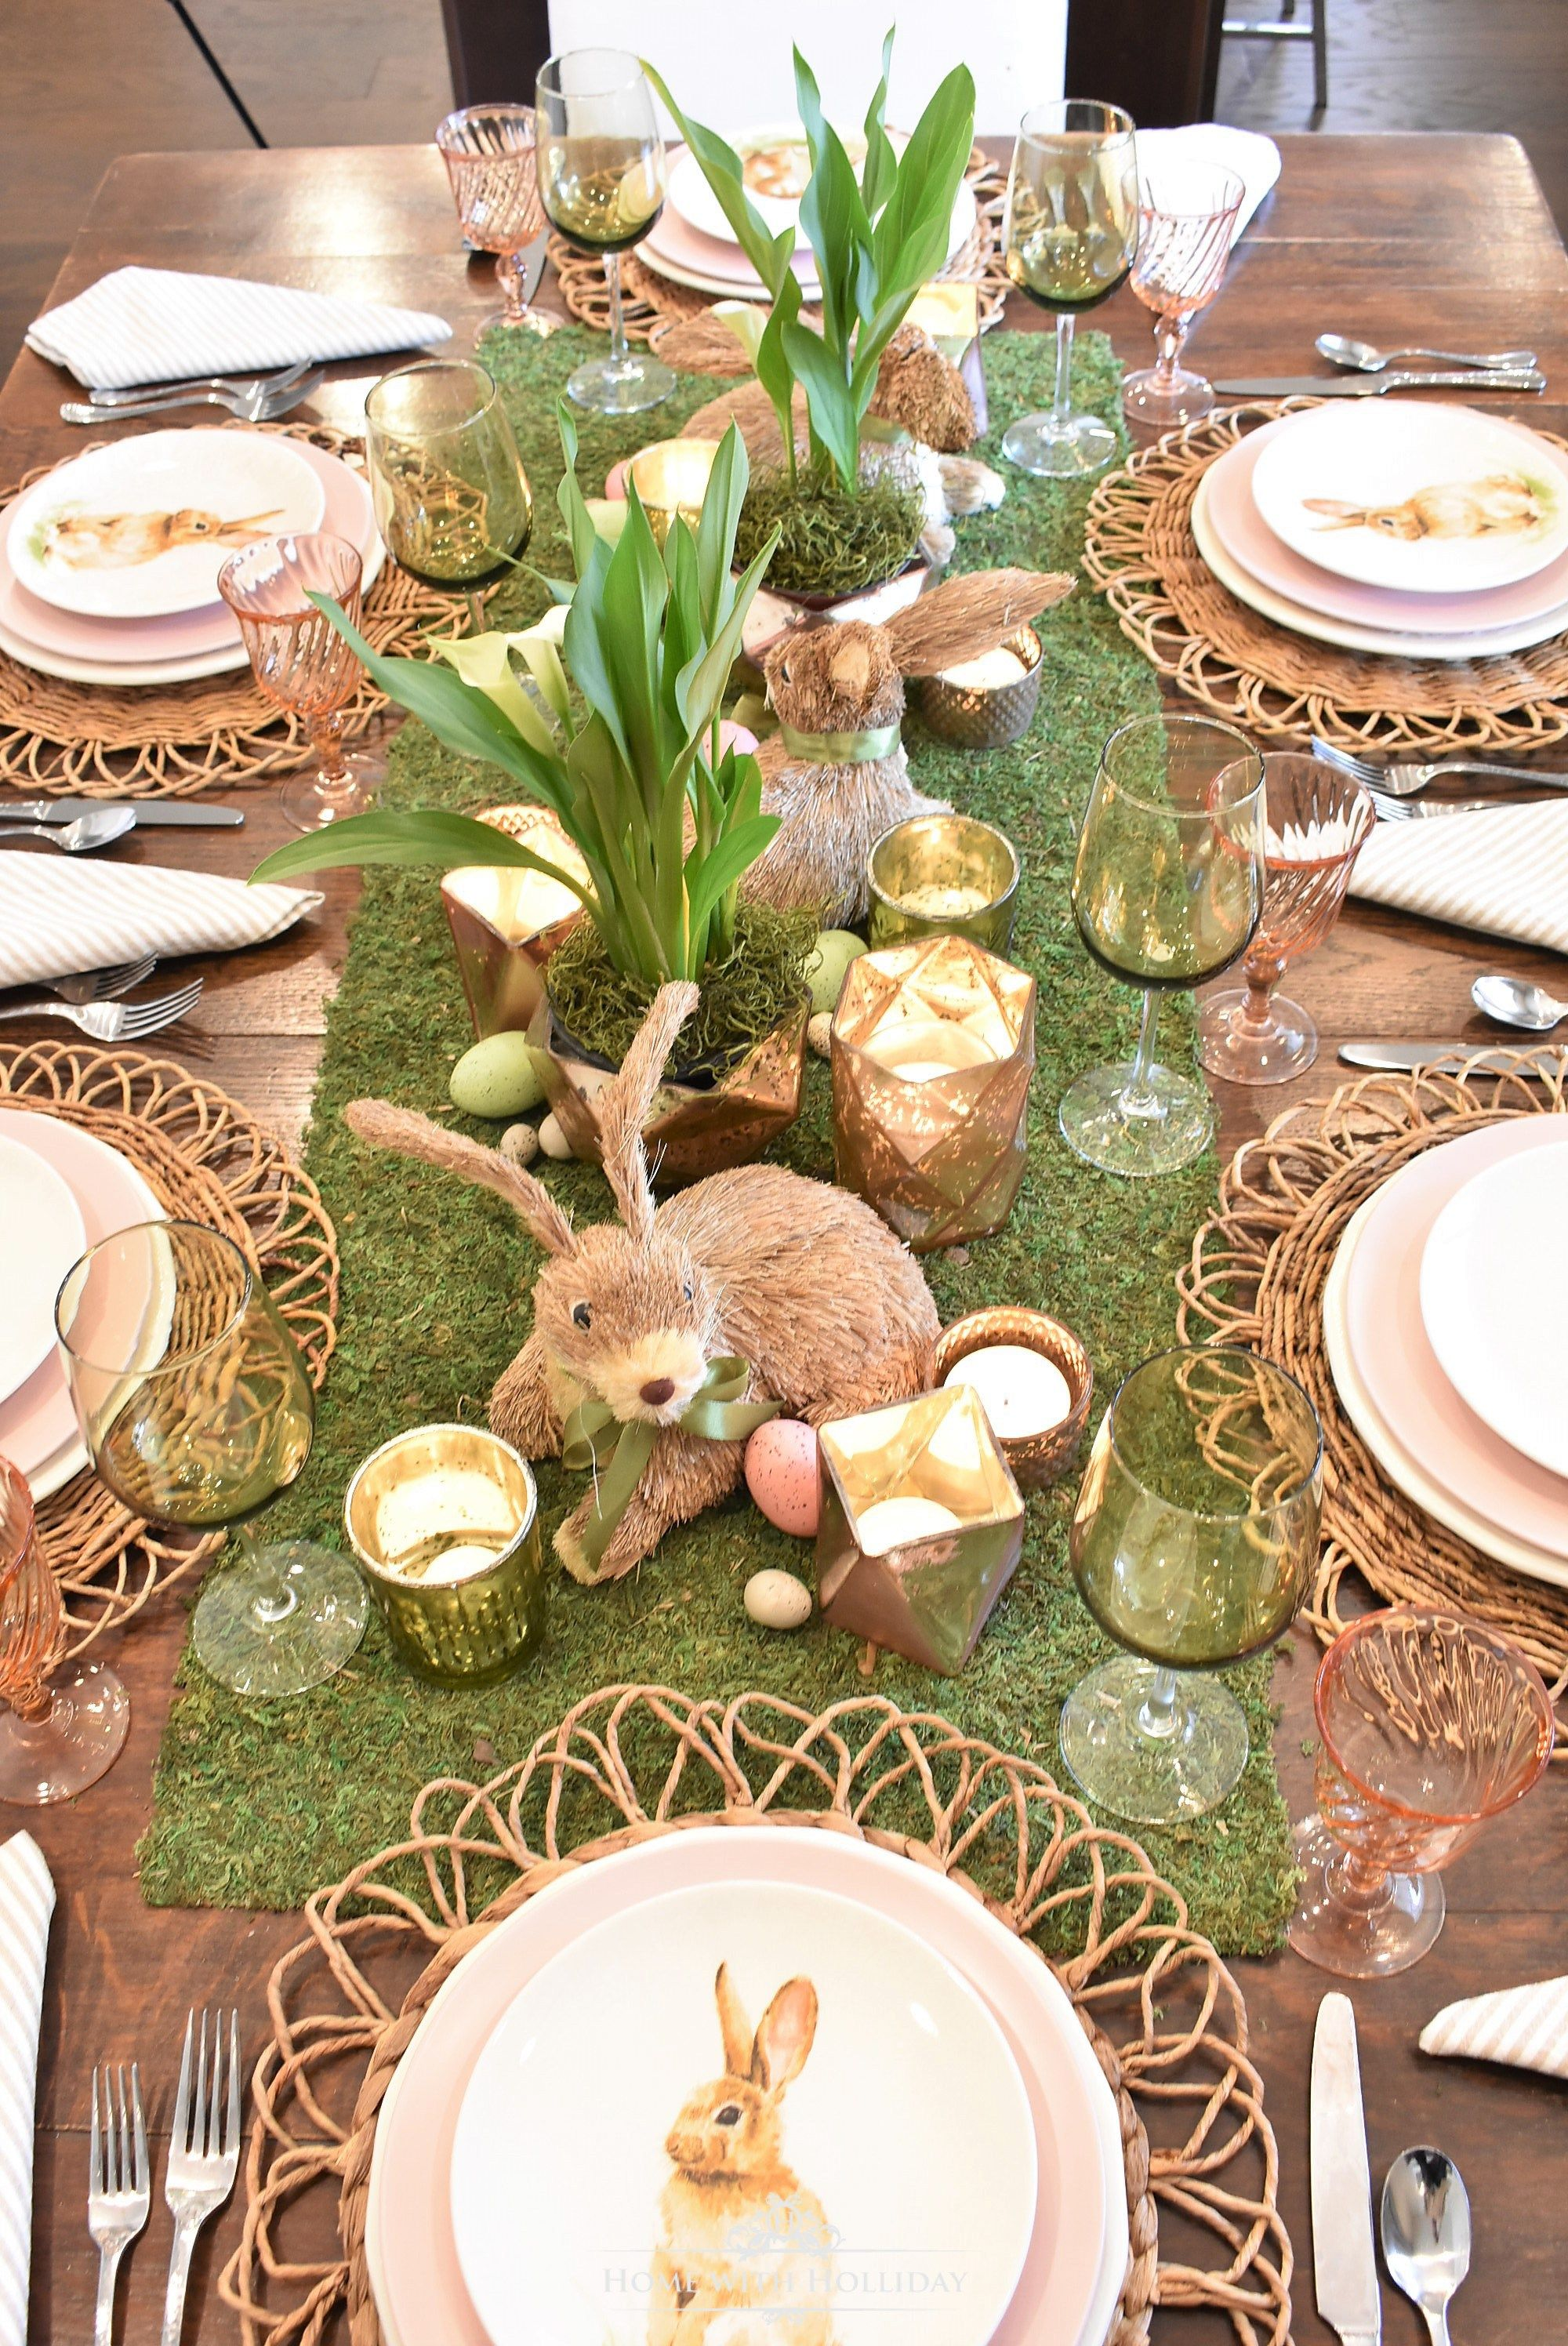 Green And Blush Pink Easter Table Setting Home With Holliday Easter Table Settings Easter Table Decorations Easter Centerpieces